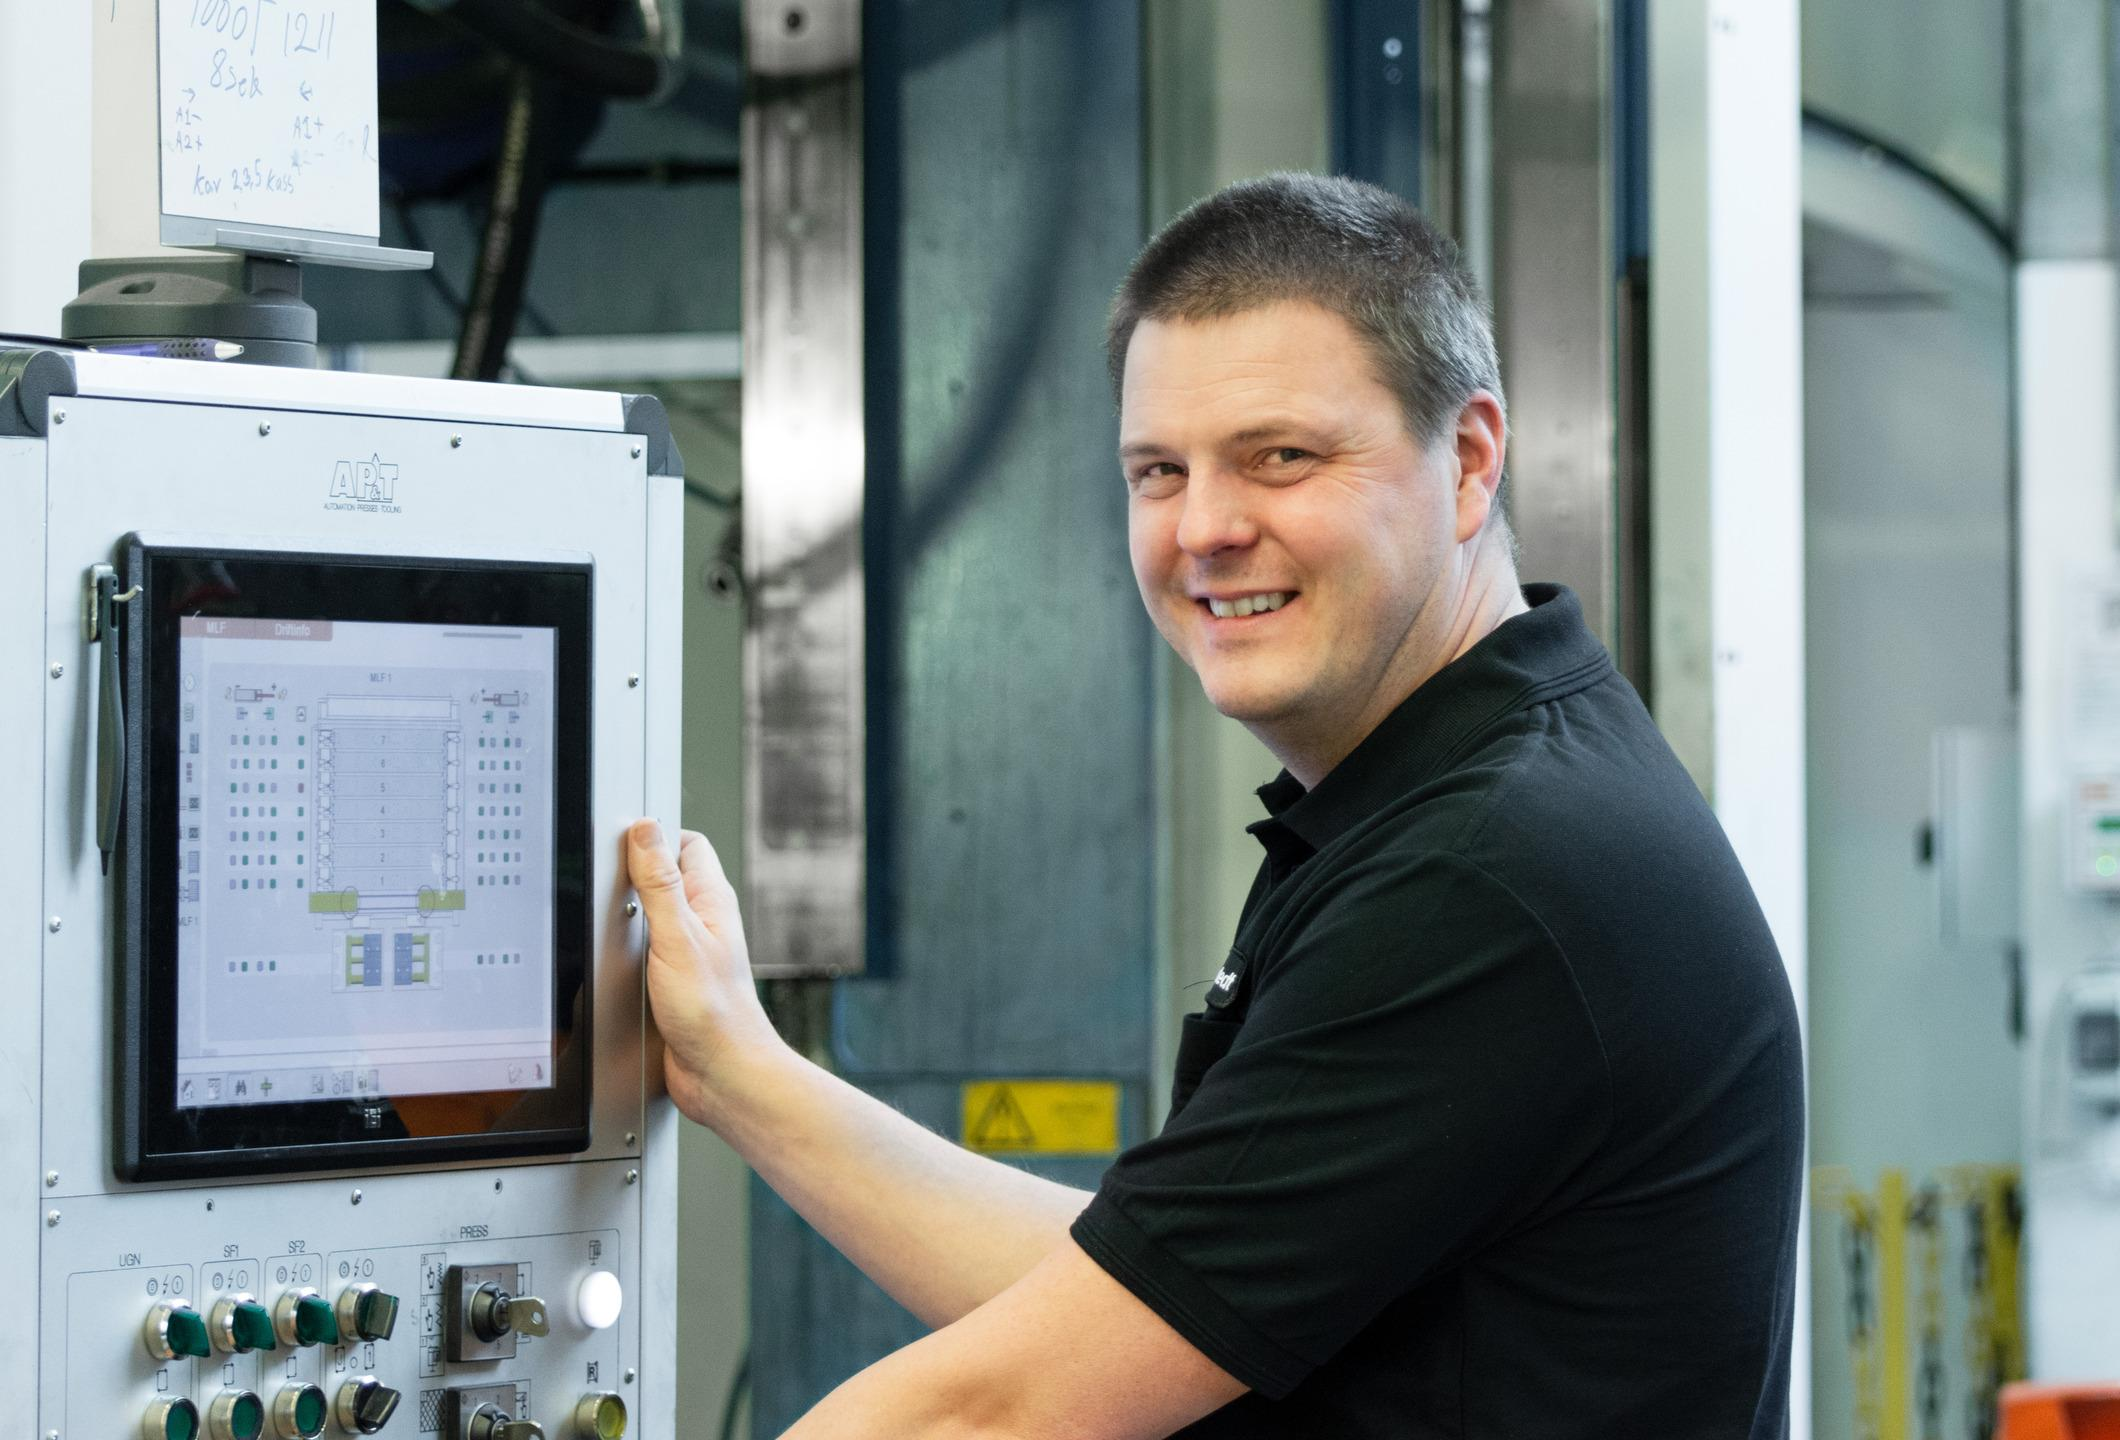 Andreas Kronstedt, trainer and service technician at AP&T.